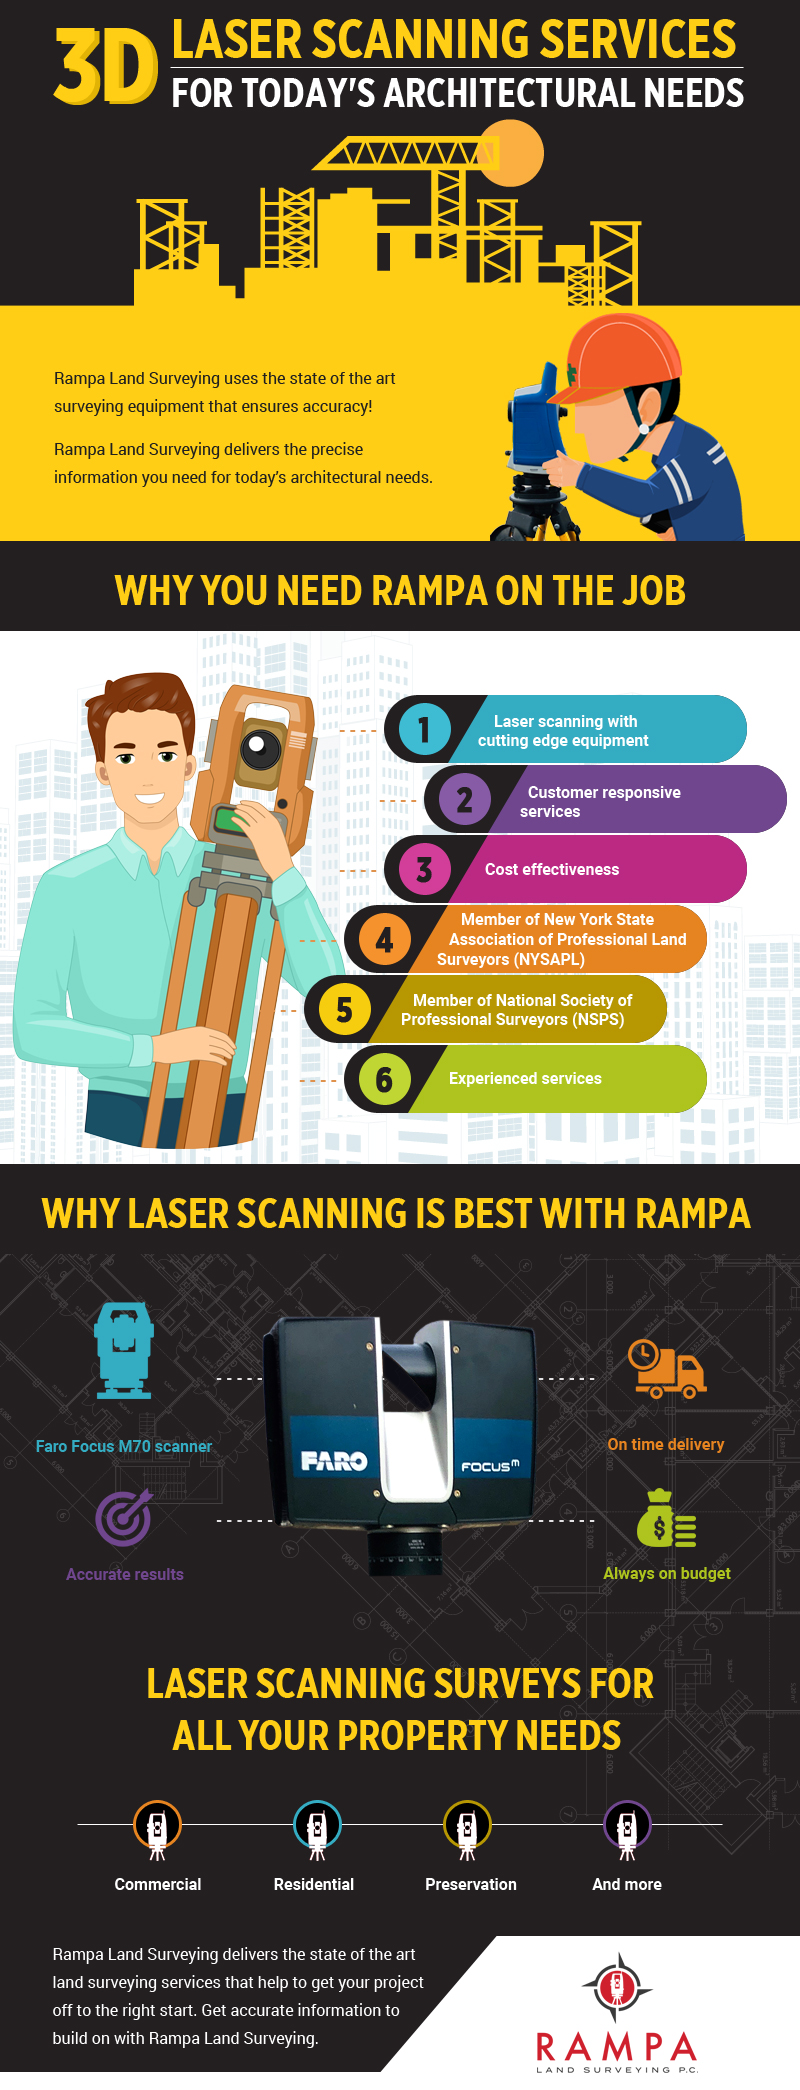 3D Laser Scanning Services For Today's Architectural Needs